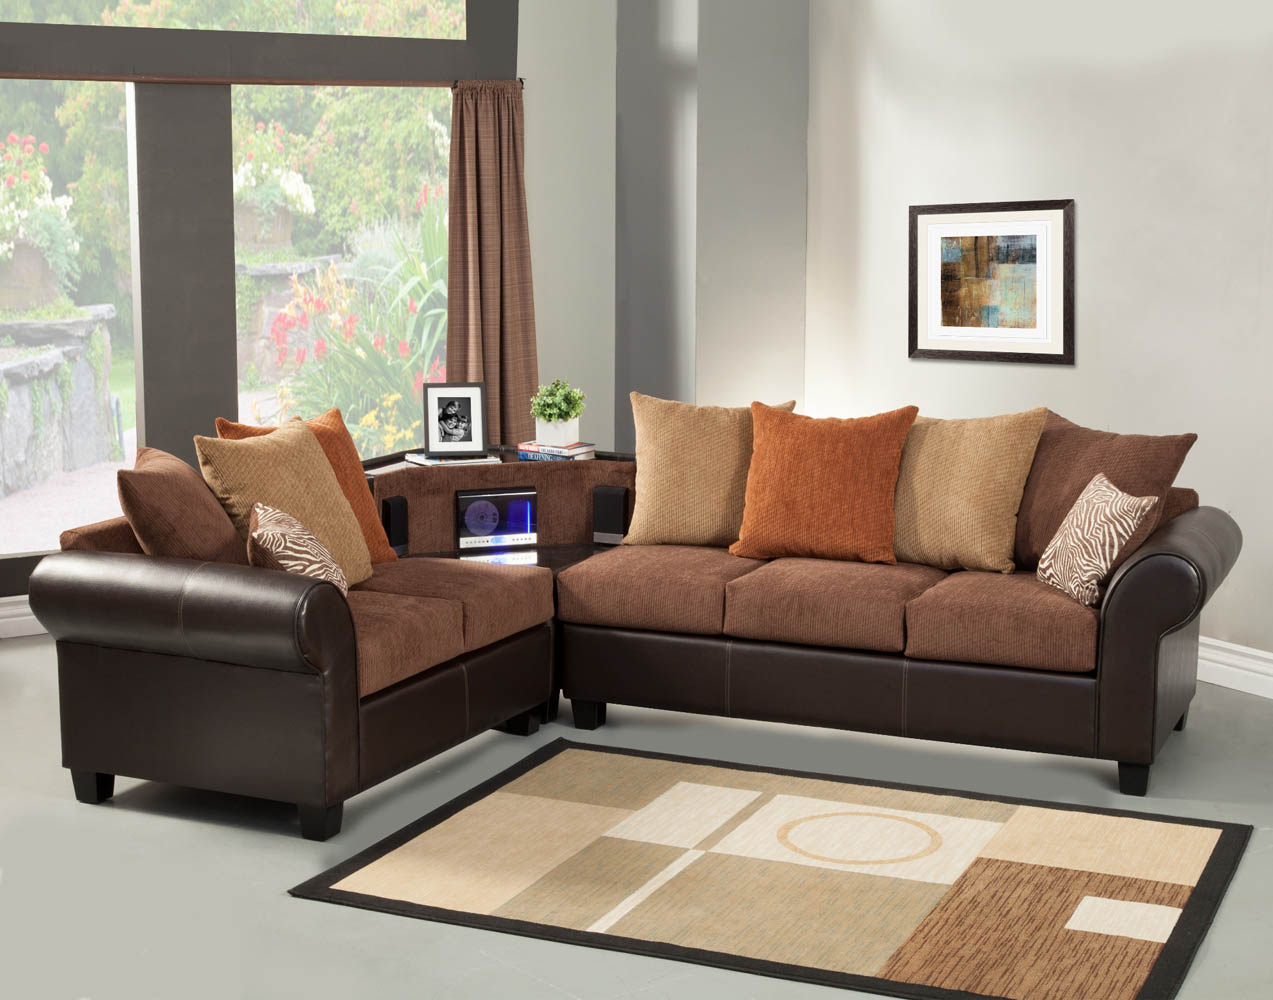 reclining power seats dazzle threshold couch dazzlereclining height products sectional motion with trim width headrests sofa and tan item southern